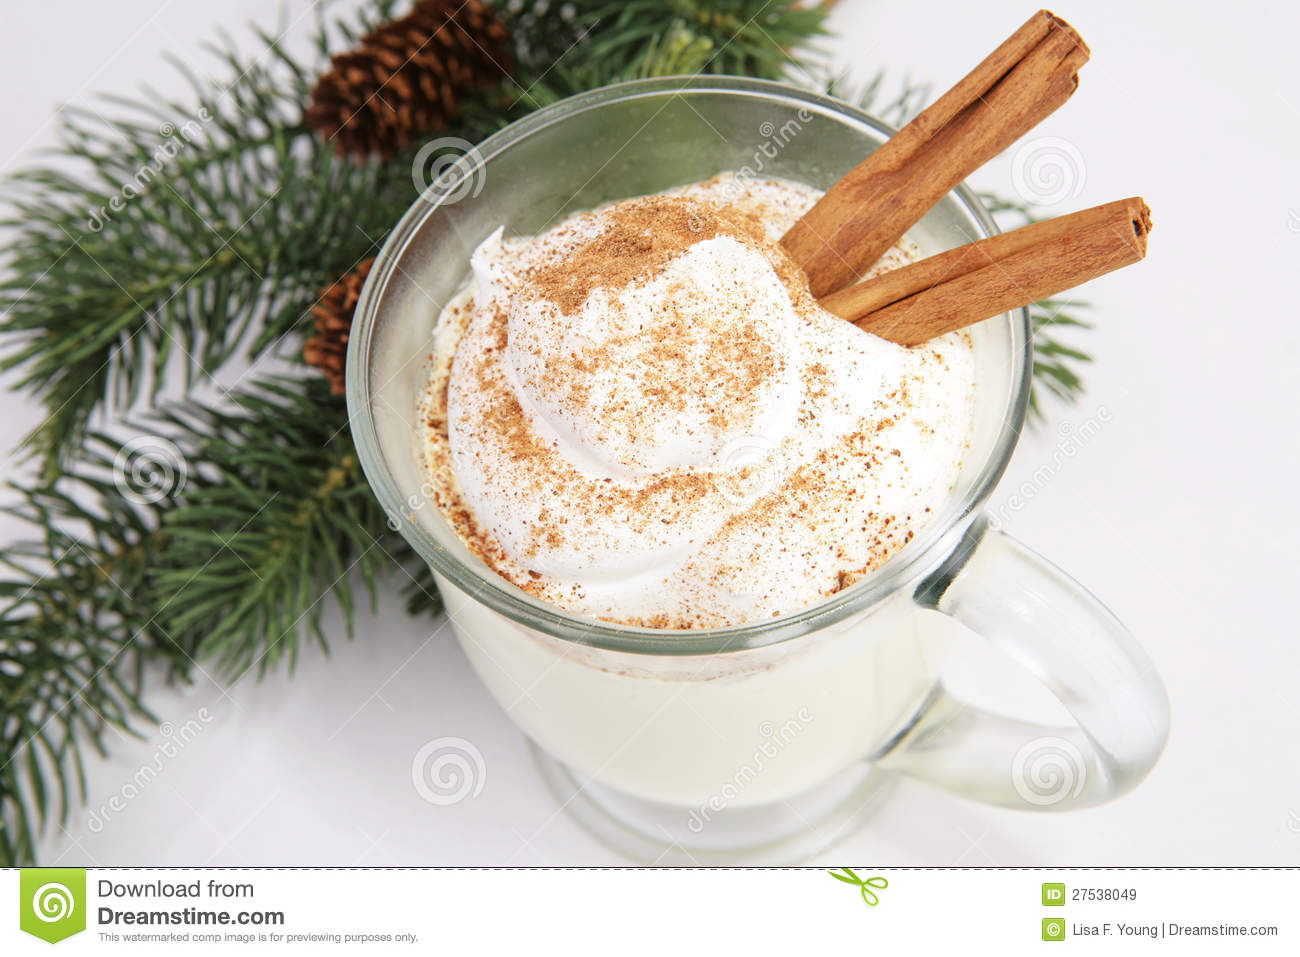 Delicious Christmas eggnog, with whipped cream, nutmeg, and cinnamon.